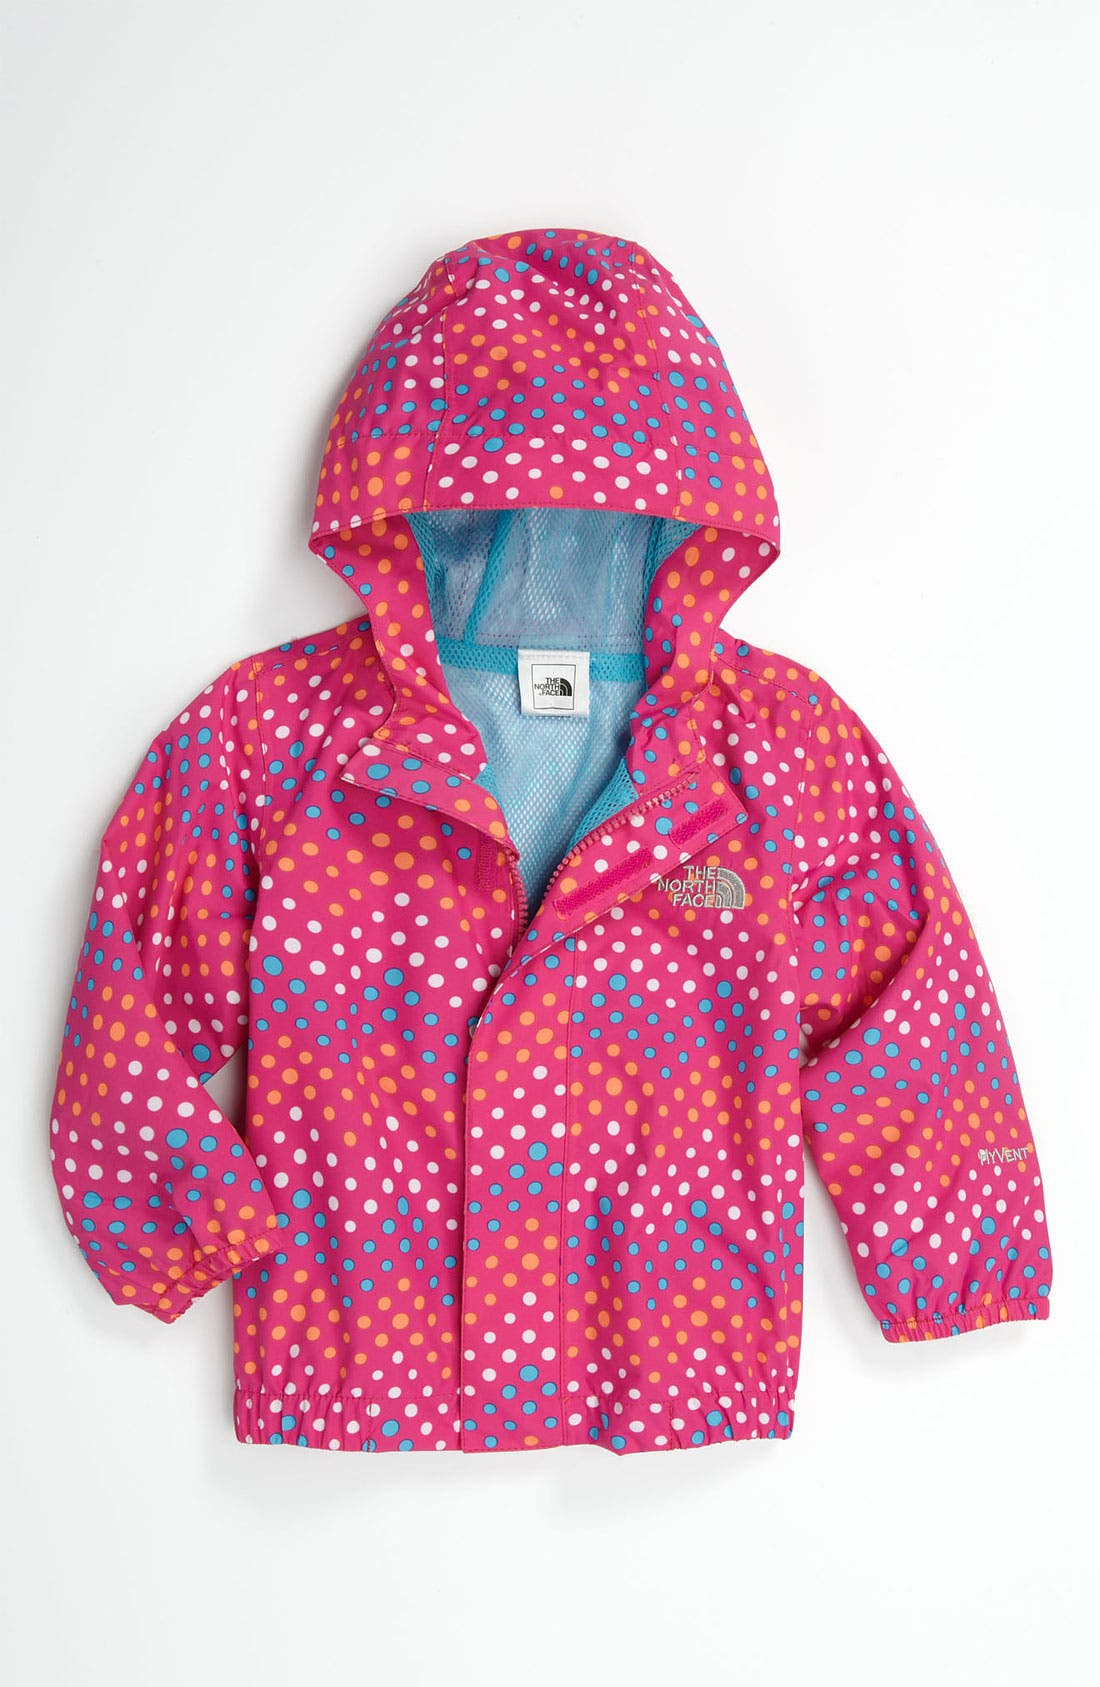 Alternate Image 1 Selected - The North Face 'Dottie - Tailout' Rain Jacket (Baby)